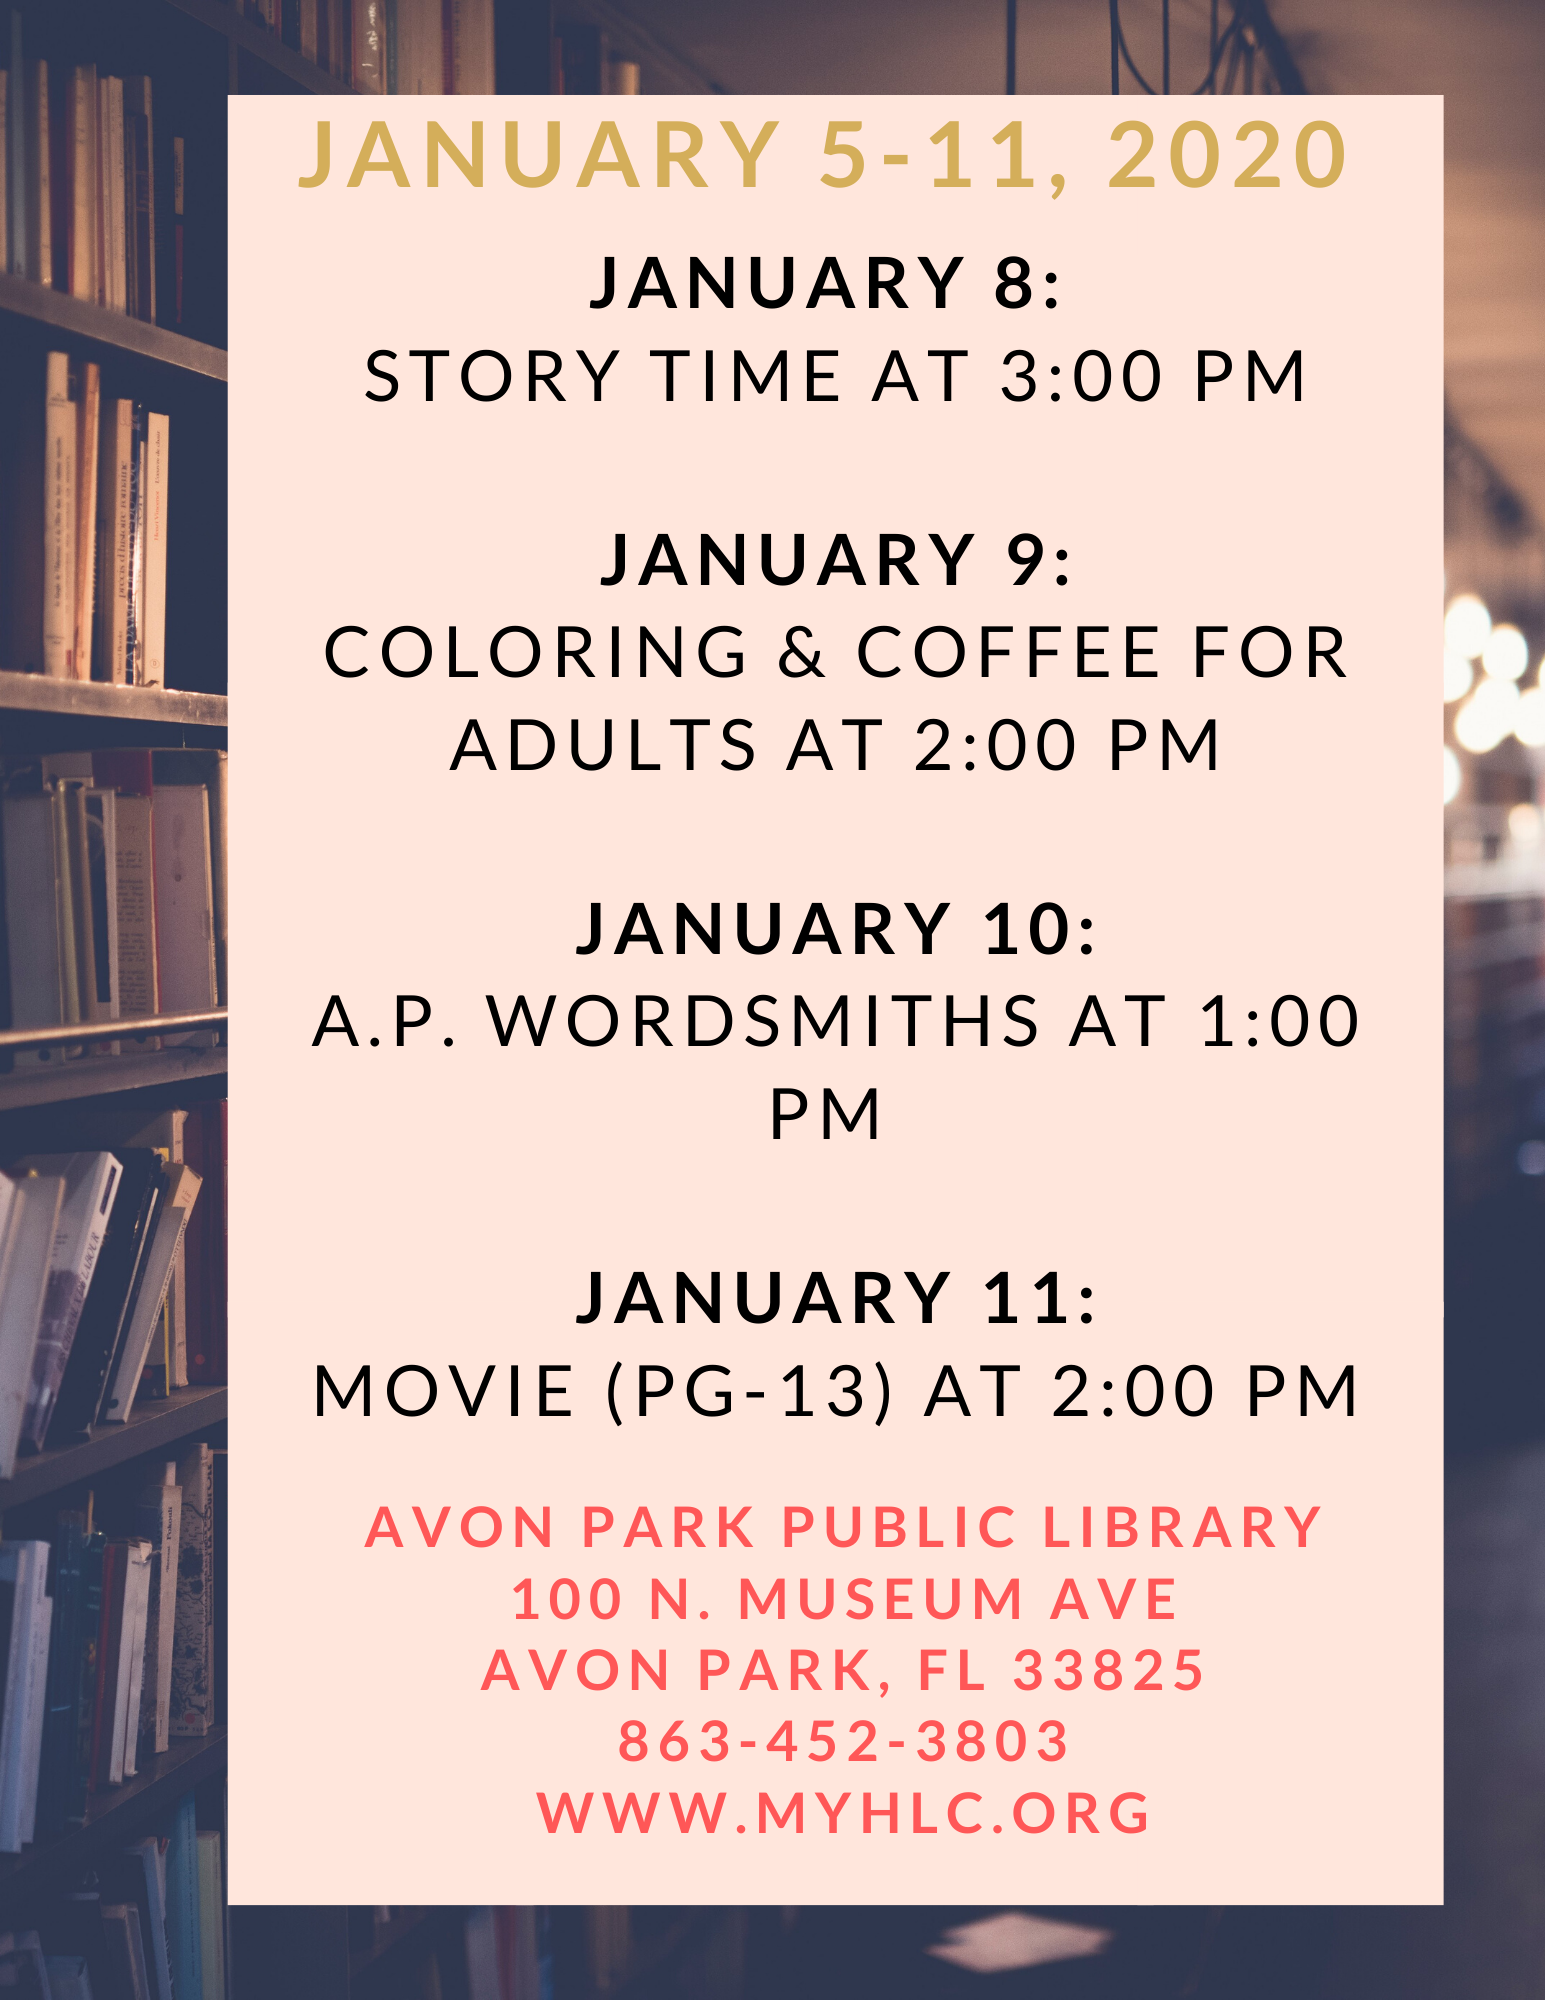 Avon Park Public Library events for the week January 5 to January 11, 2020 are as follows: On January 8, 2020, we will have story time at 3:00 PM. On January 9, 2020, we will have coloring and coffee for adults at 2:00 PM. On January 10, 2020 at 1:00 PM, the Avon Park Wordsmiths will meet. On January 11, 2020 at 2:00 PM, we will be showing a movie (PG-13).